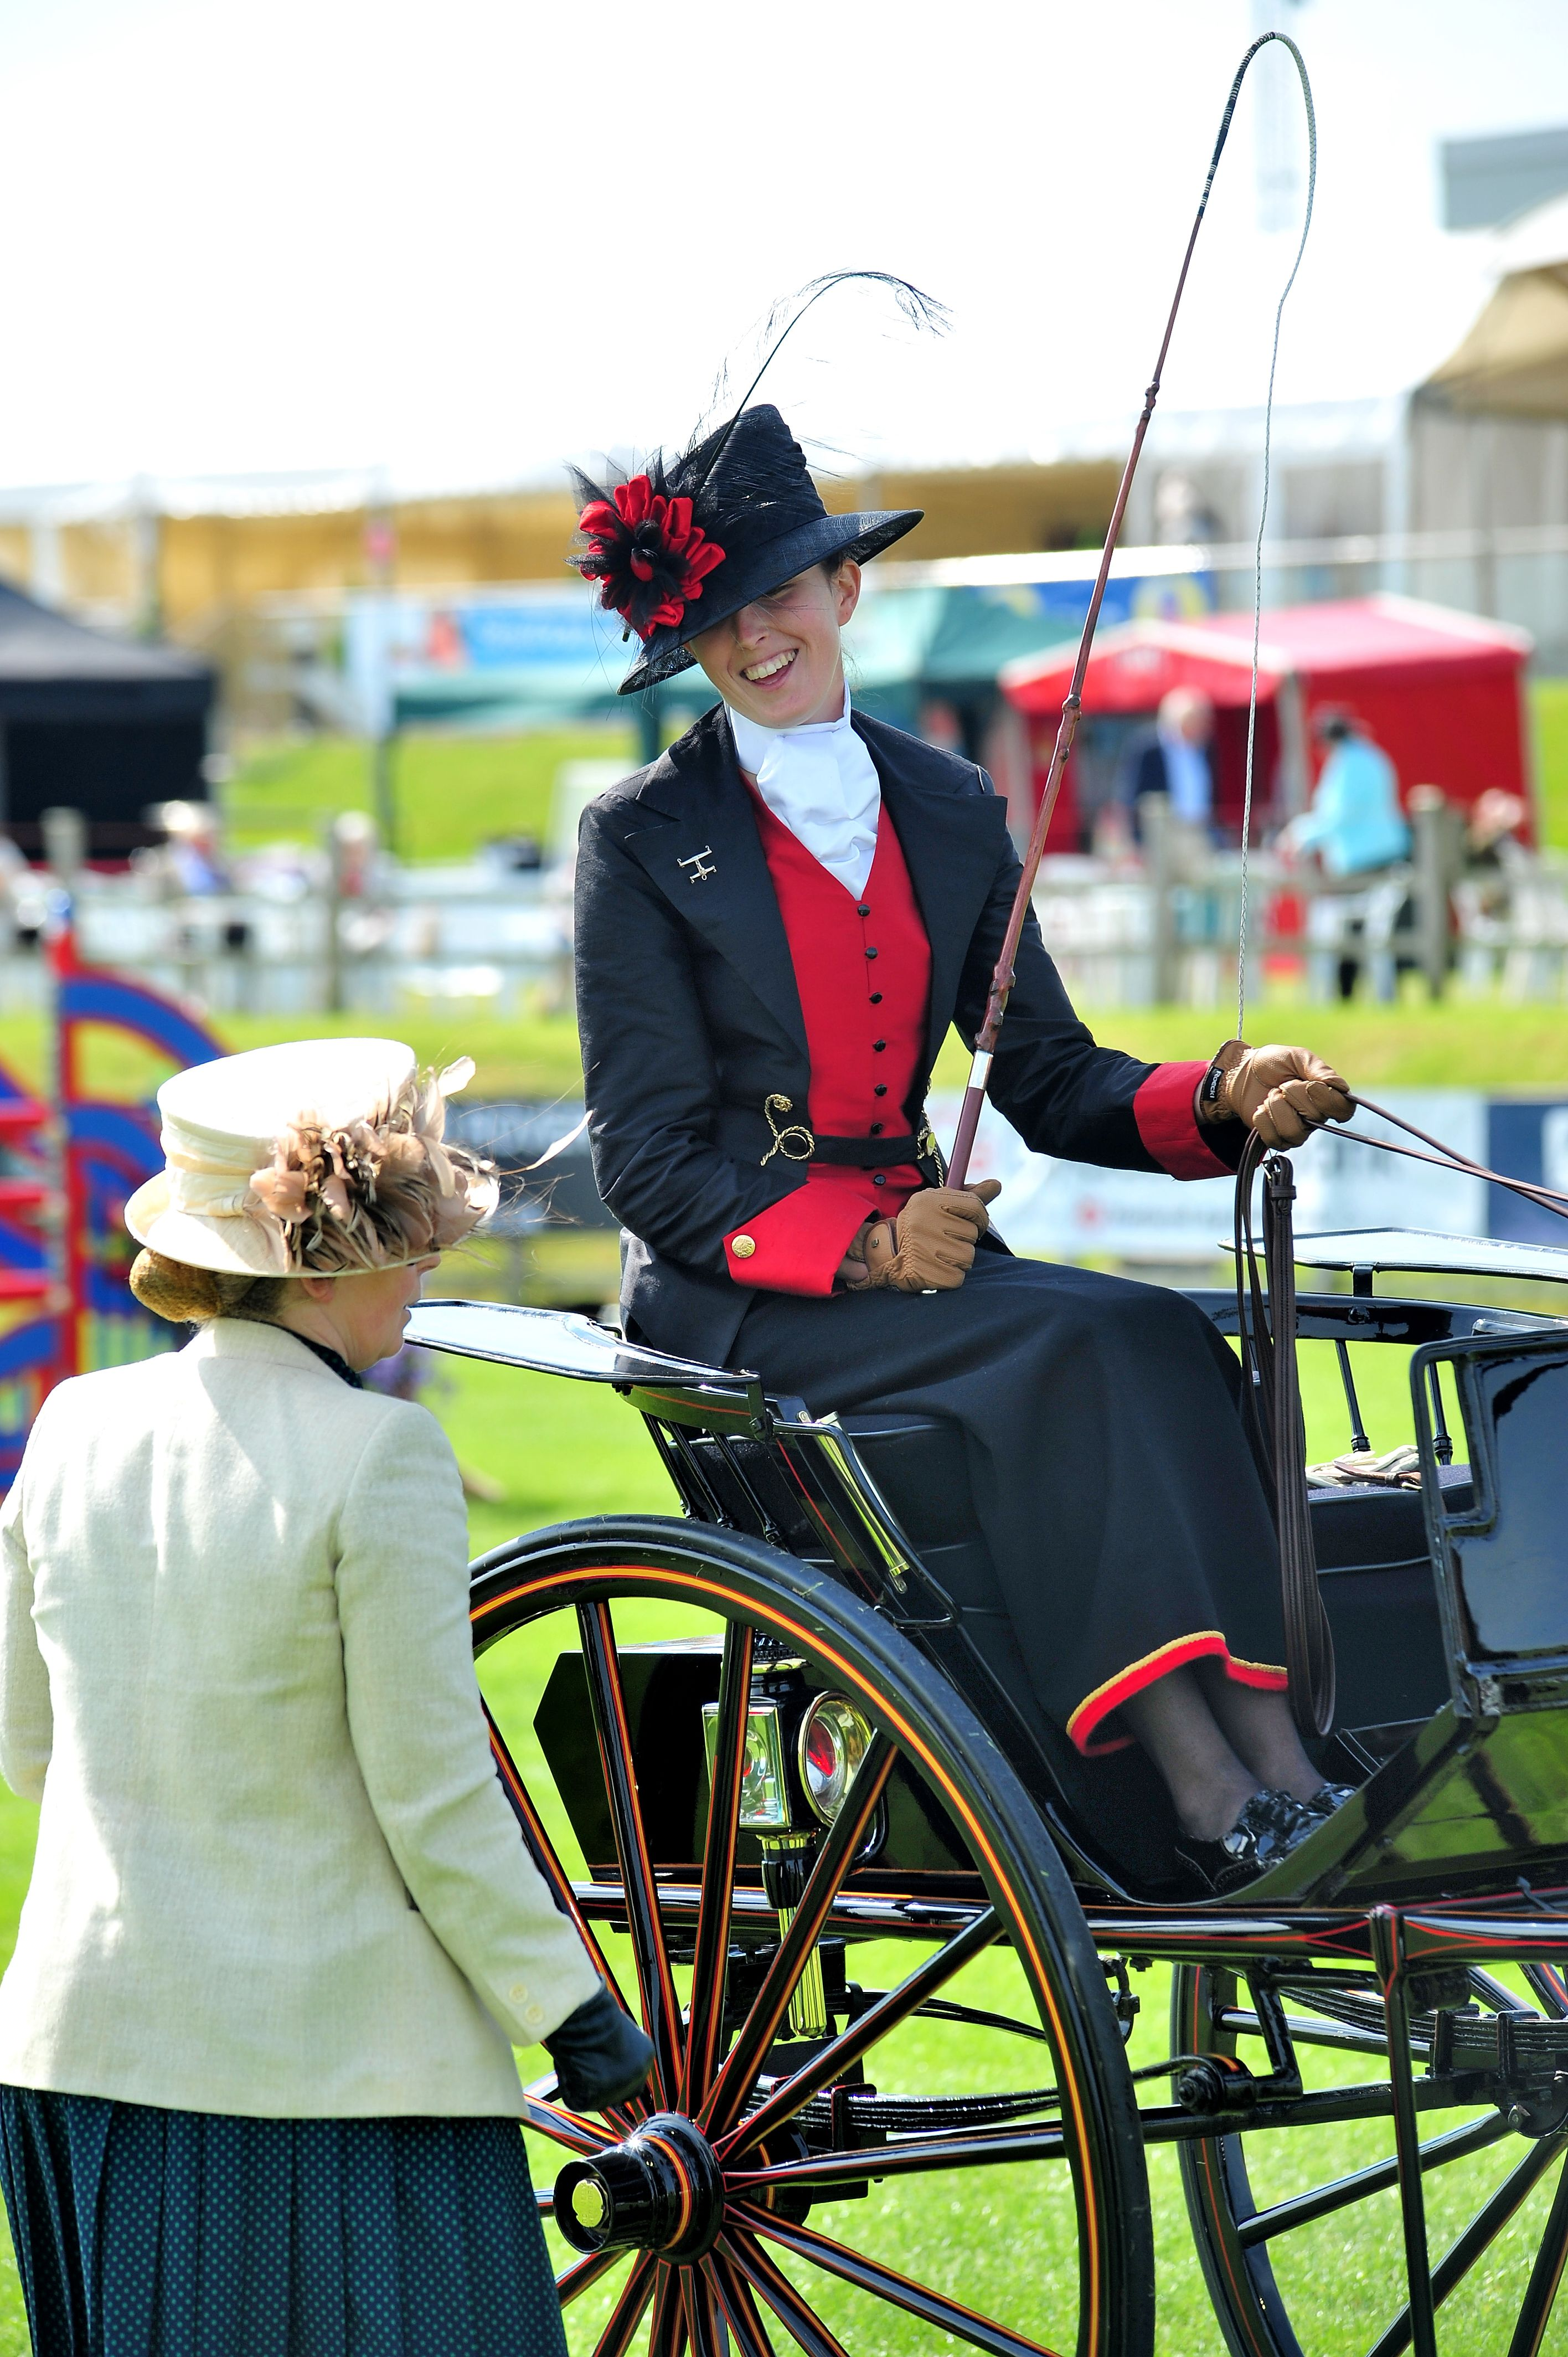 Pin By Amy Greenslade On Carriage Driving Carriage Driving Attire Carriage Driving Turnout Carriage Driving